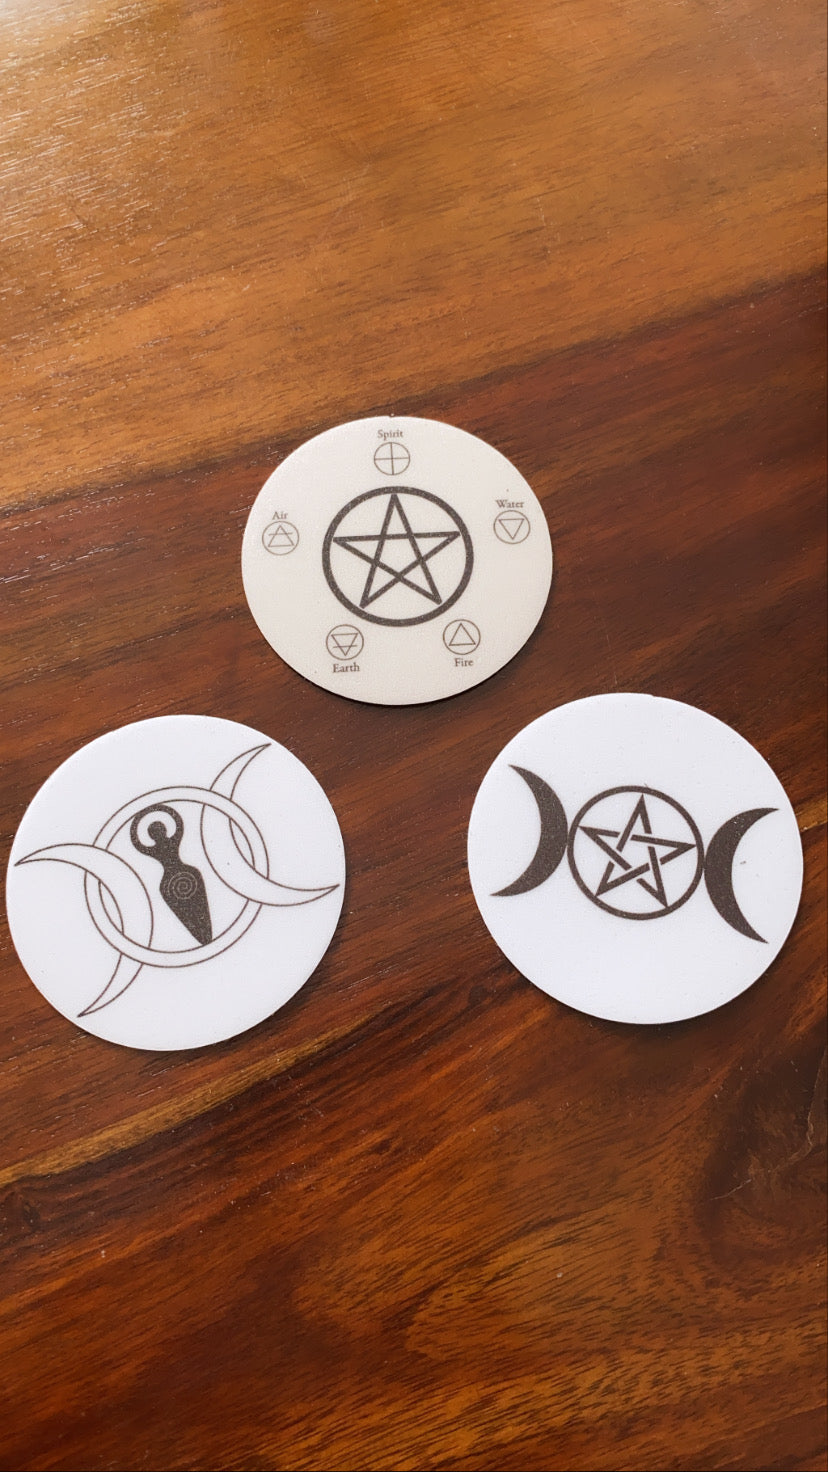 Witchy Magnets - Triple moon goddess - Triple moon pentagram - pentacle - elements, symbol elementals - whychy symbols magnetic altar decor